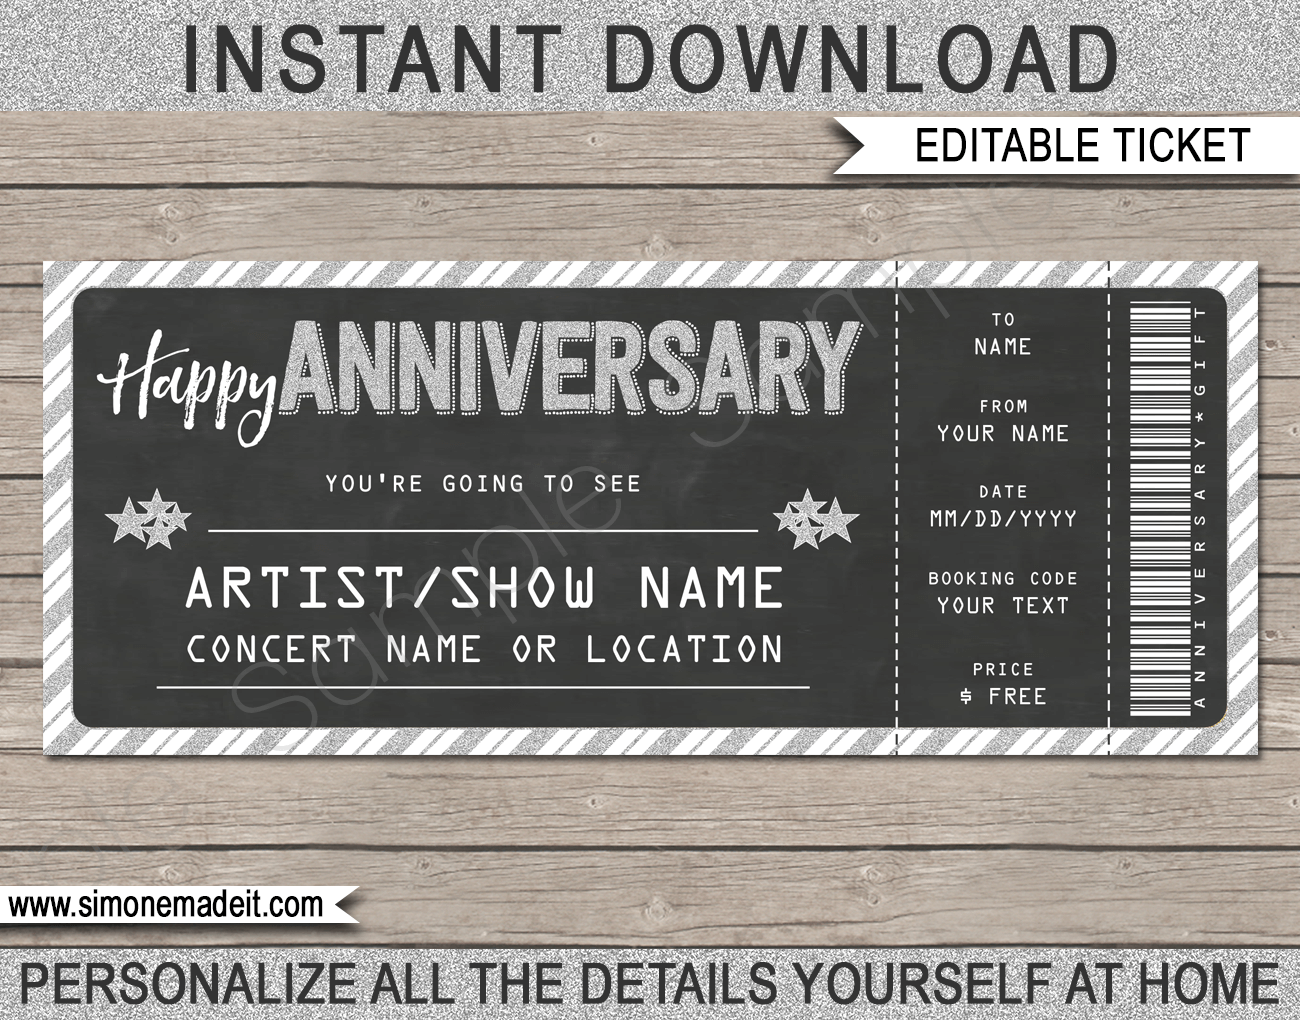 Printable Concert Ticket Anniversary Gift template | Last Minute Surprise Gift | Concert, Show, Performance, Band, Artist, Festival | Happy Anniversary Present | DIY Editable & Printable Template | Instant Download via simonemadeit.com